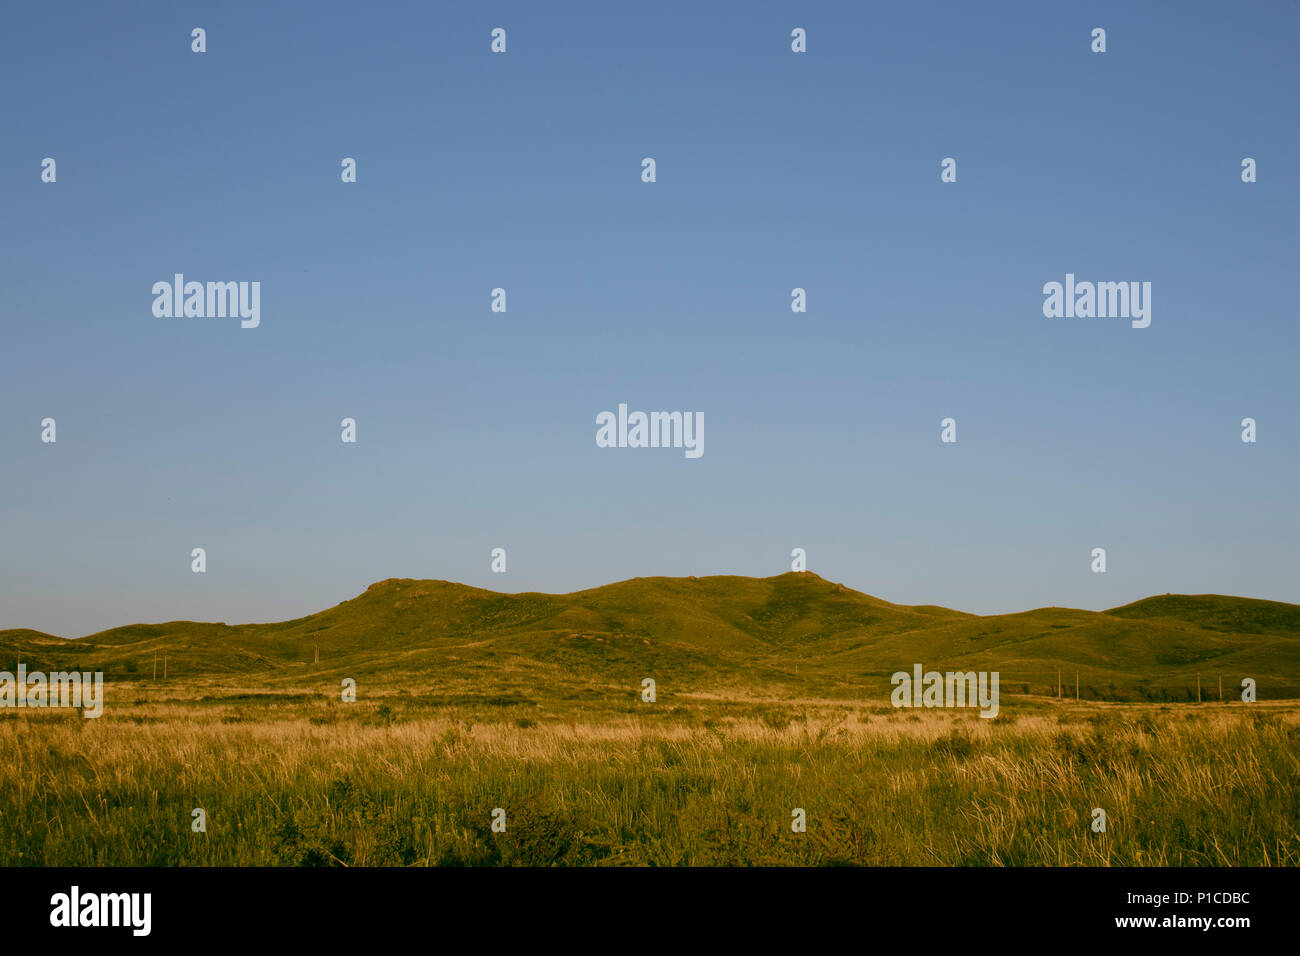 Evening hills. Natural scenery. Summer background. Steppe horizon. - Stock Image